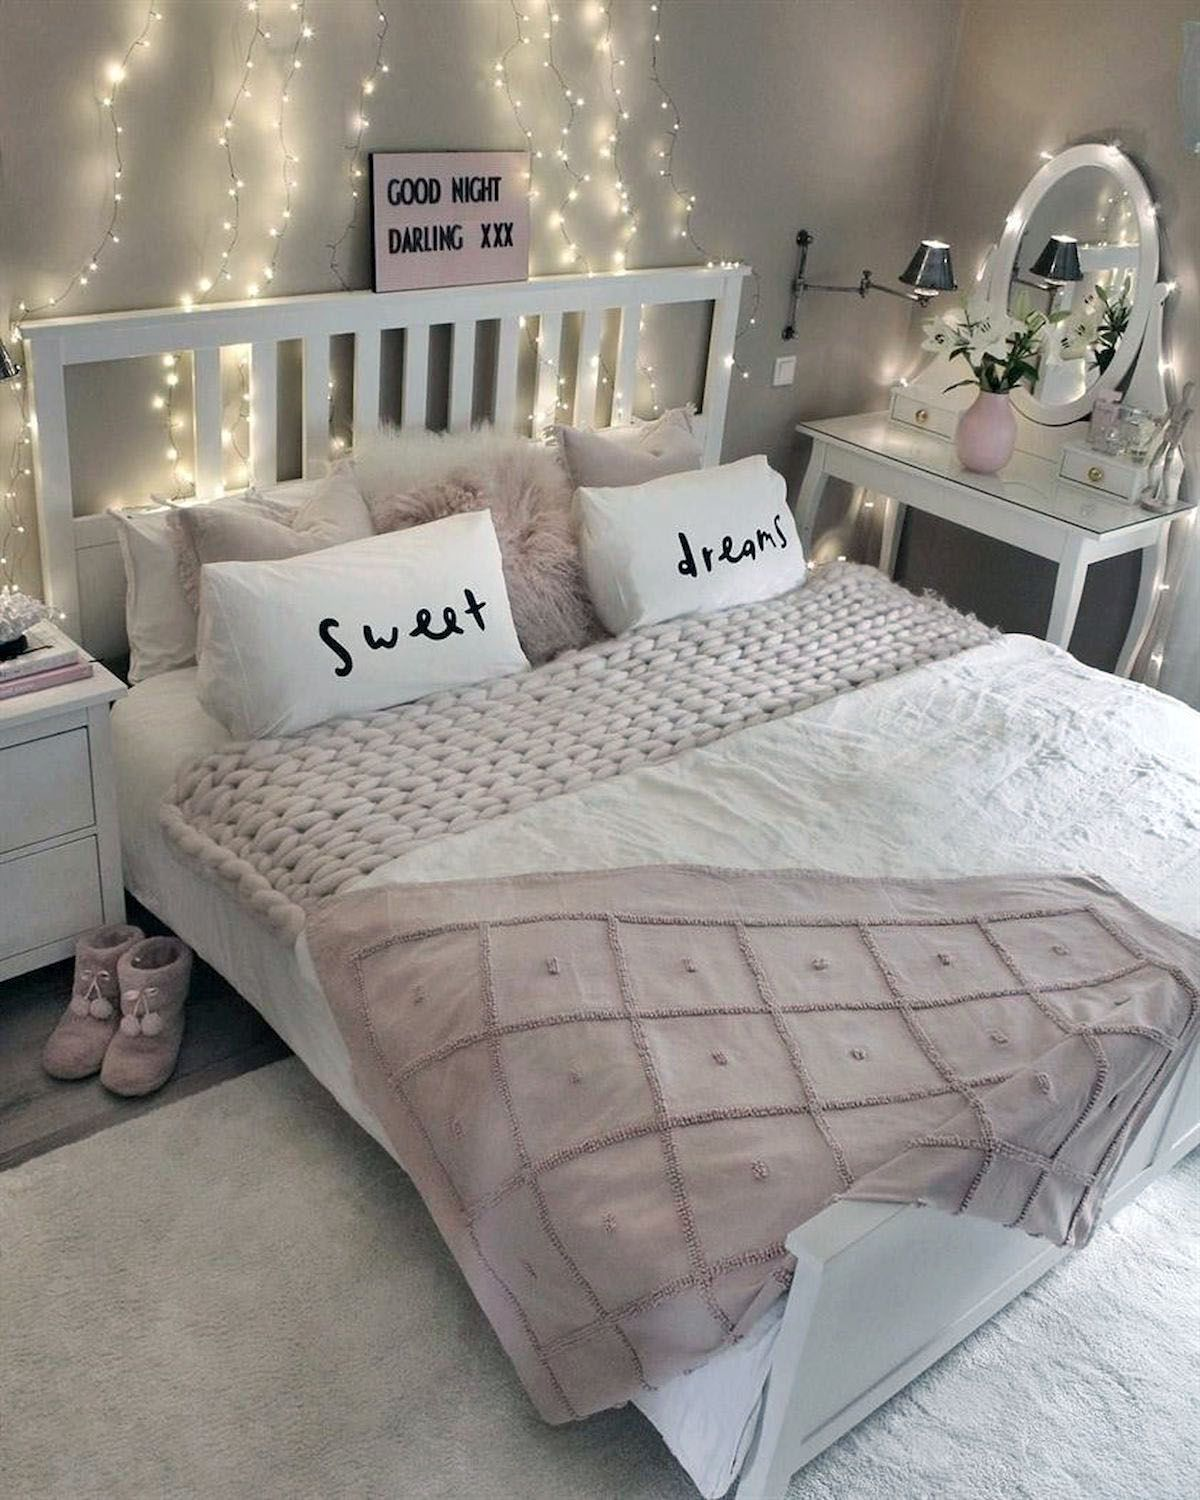 So Cool Teenage Tomboy Room Ideas Exclusive On Home Decor Cool Decor Exclusive Home Ideas Room Girl Bedroom Decor Girls Bedroom Themes Girls Dream Bedroom